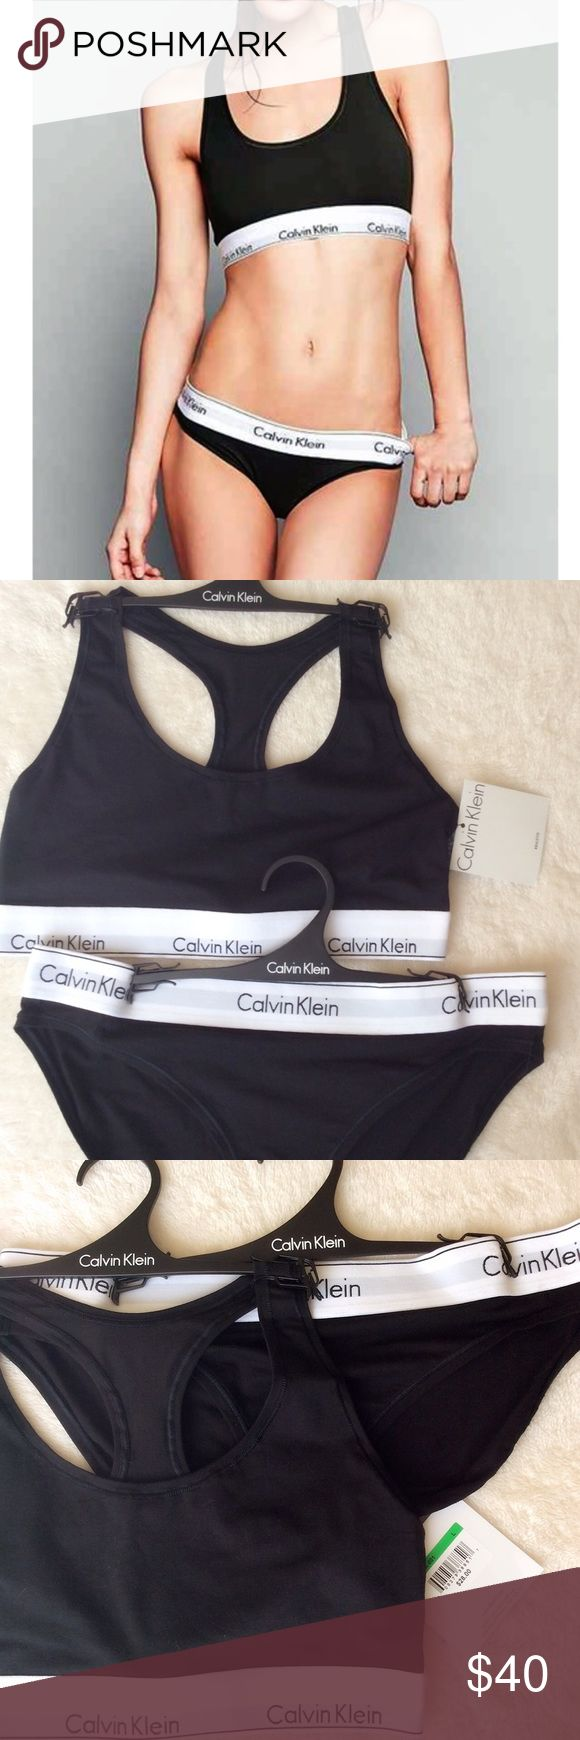 Calvin Klein Modern cotton Bralette bikini panty NWT Authentic Calvin Klein modern cotton logo bralette and matching bikini underwear set. Calvin Klein Intimates & Sleepwear